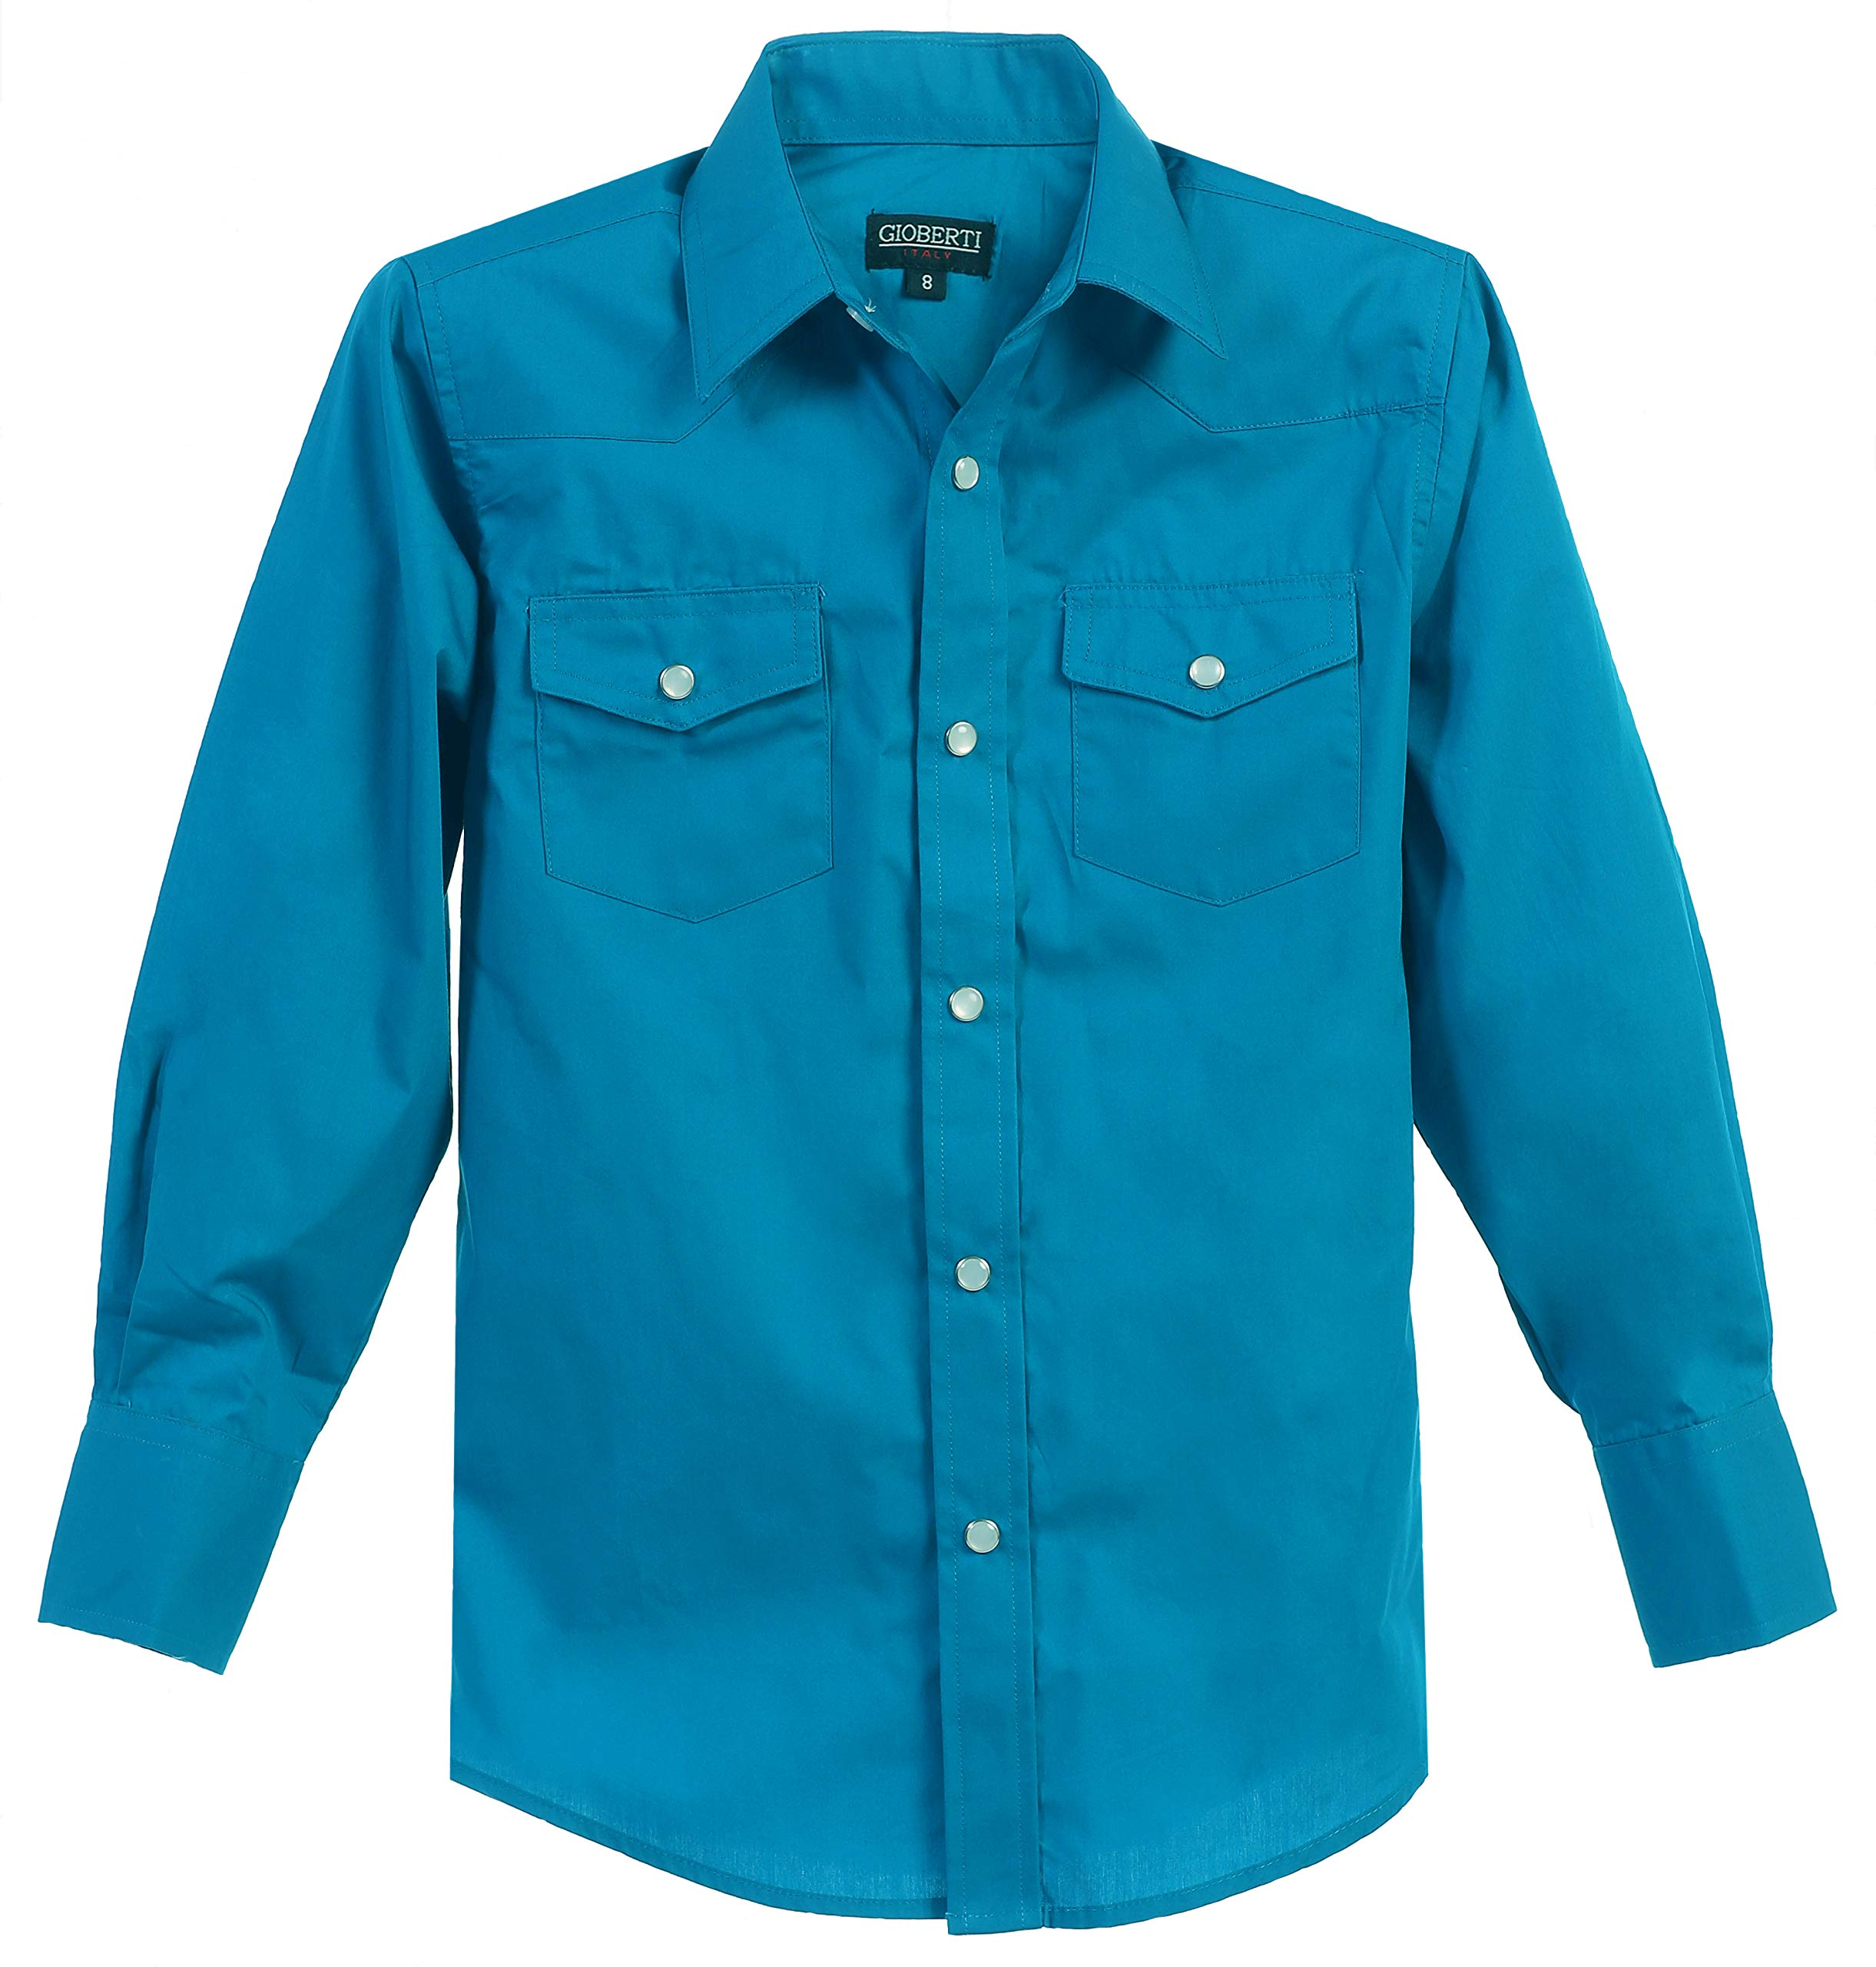 Gioberti Big Boys Casual Western Solid Long Sleeve Shirt with Pearl Snaps, Turquoise, Size 10